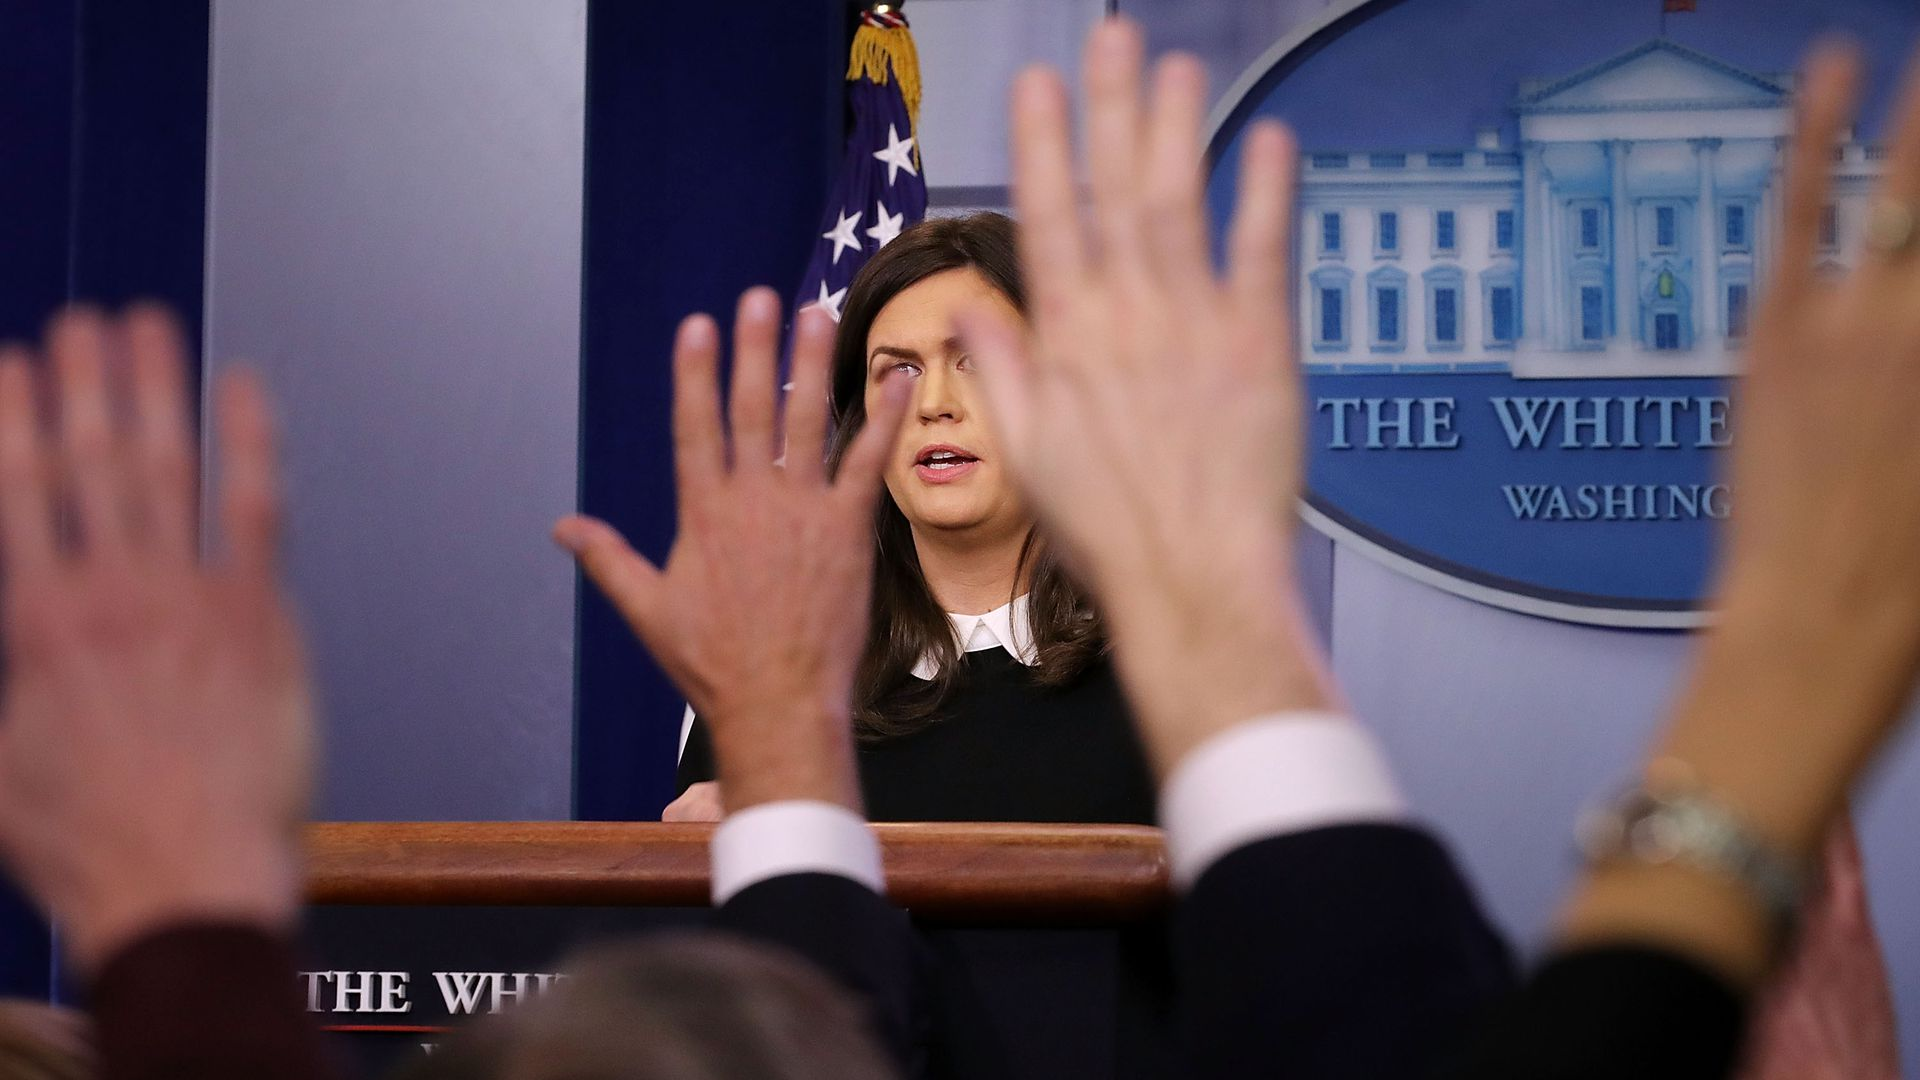 Sarah Sanders takes questions during the White House press briefing.